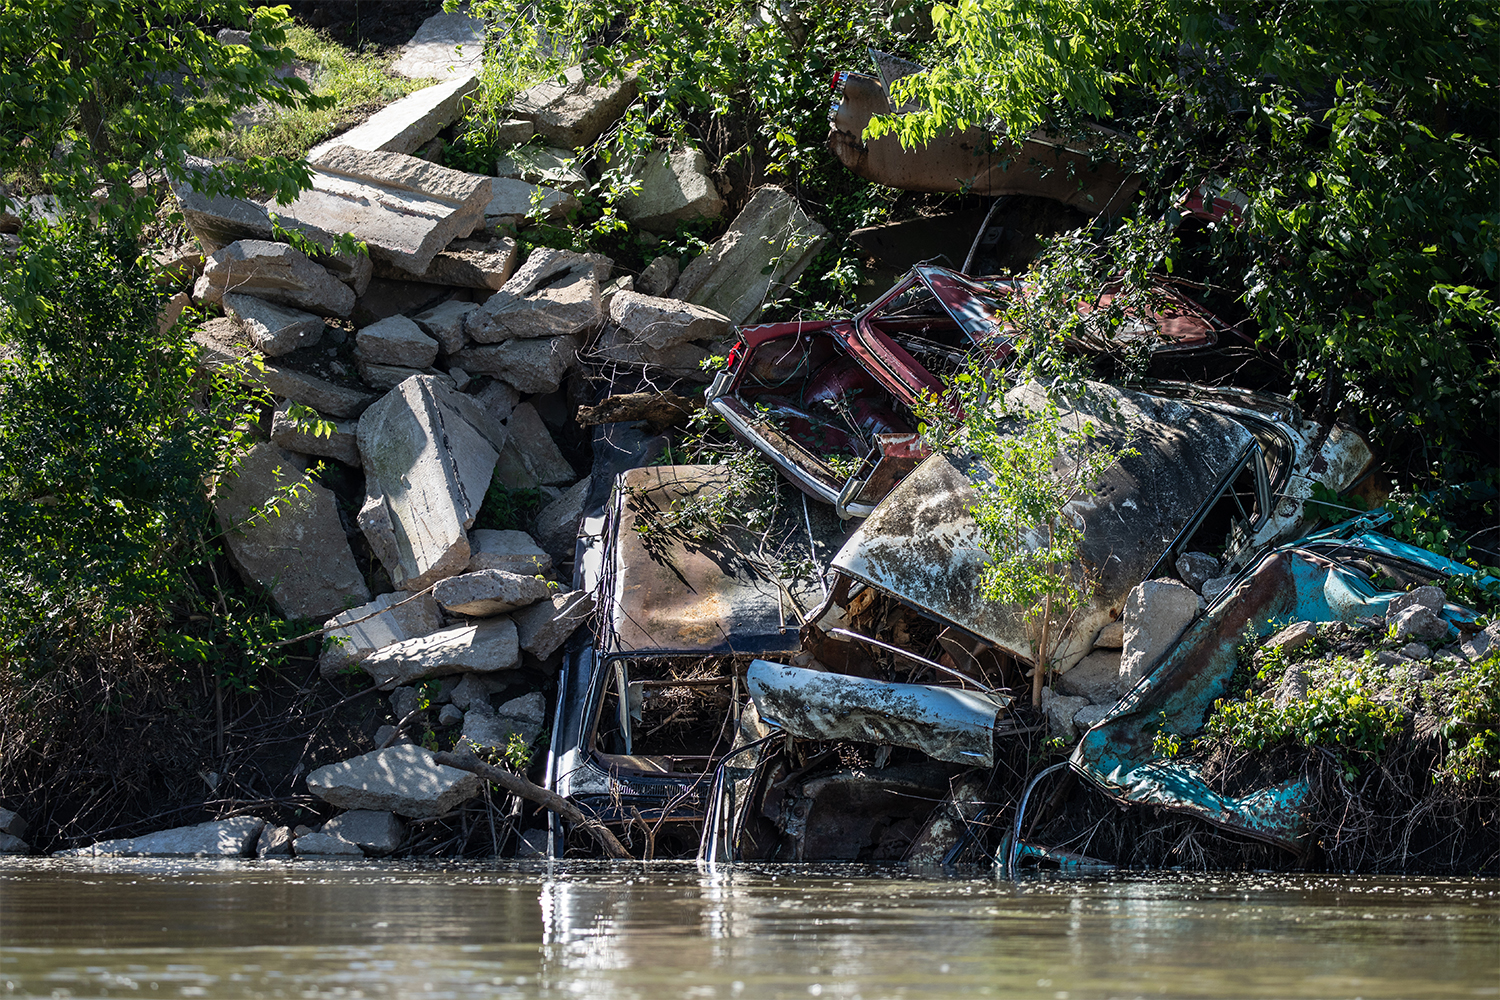 Vintage+vehicles+lay+embedded+into+the+riverbank+of+the+Iowa+River+south+of+Riverside%2C+Iowa+on+June+13%2C+2019.+In+efforts+to+reduce+riverbank+erosion%2C+vehicles+are+sometimes+placed+on+the+shore.